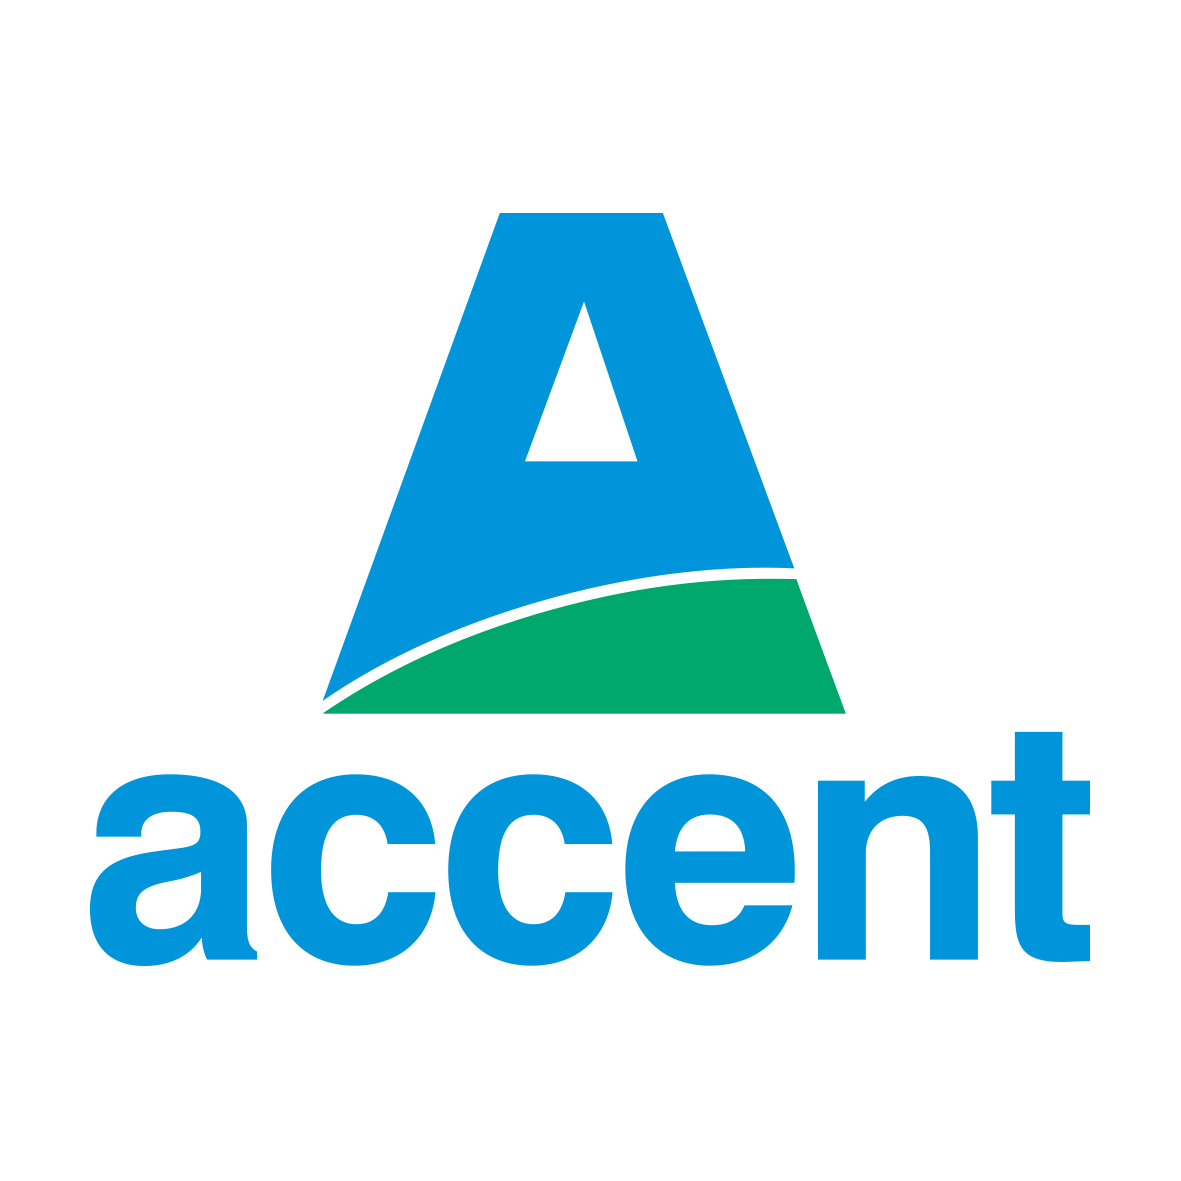 Bradford Telegraph and Argus: Accent logo